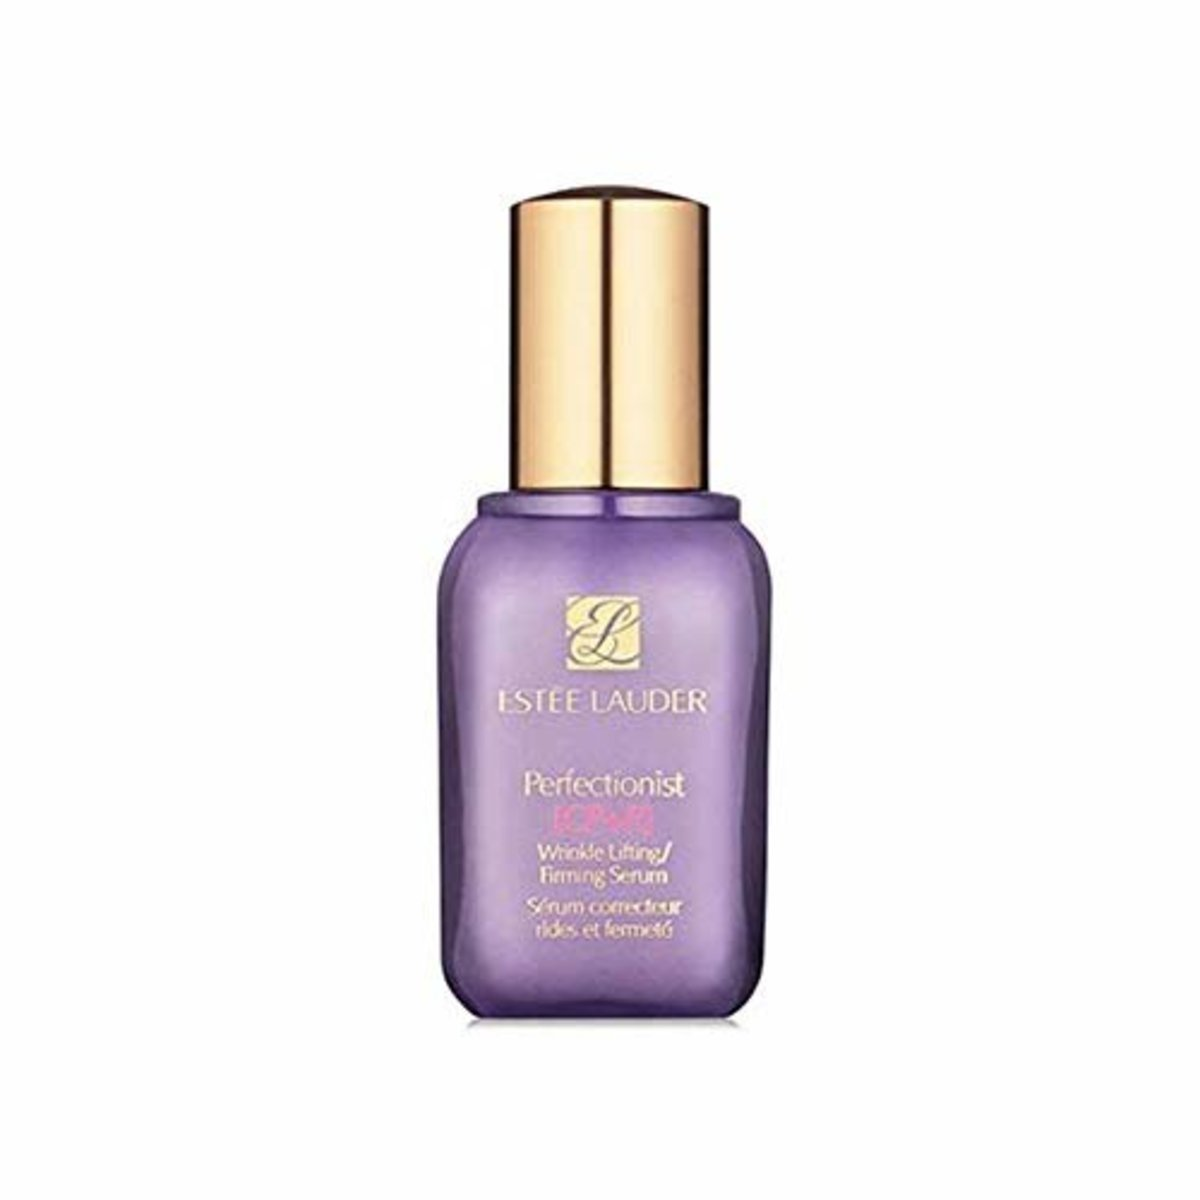 Perfectionist [CP+R] Wrinkle Lifting/Firming Serum 50ml (Parallel Import)